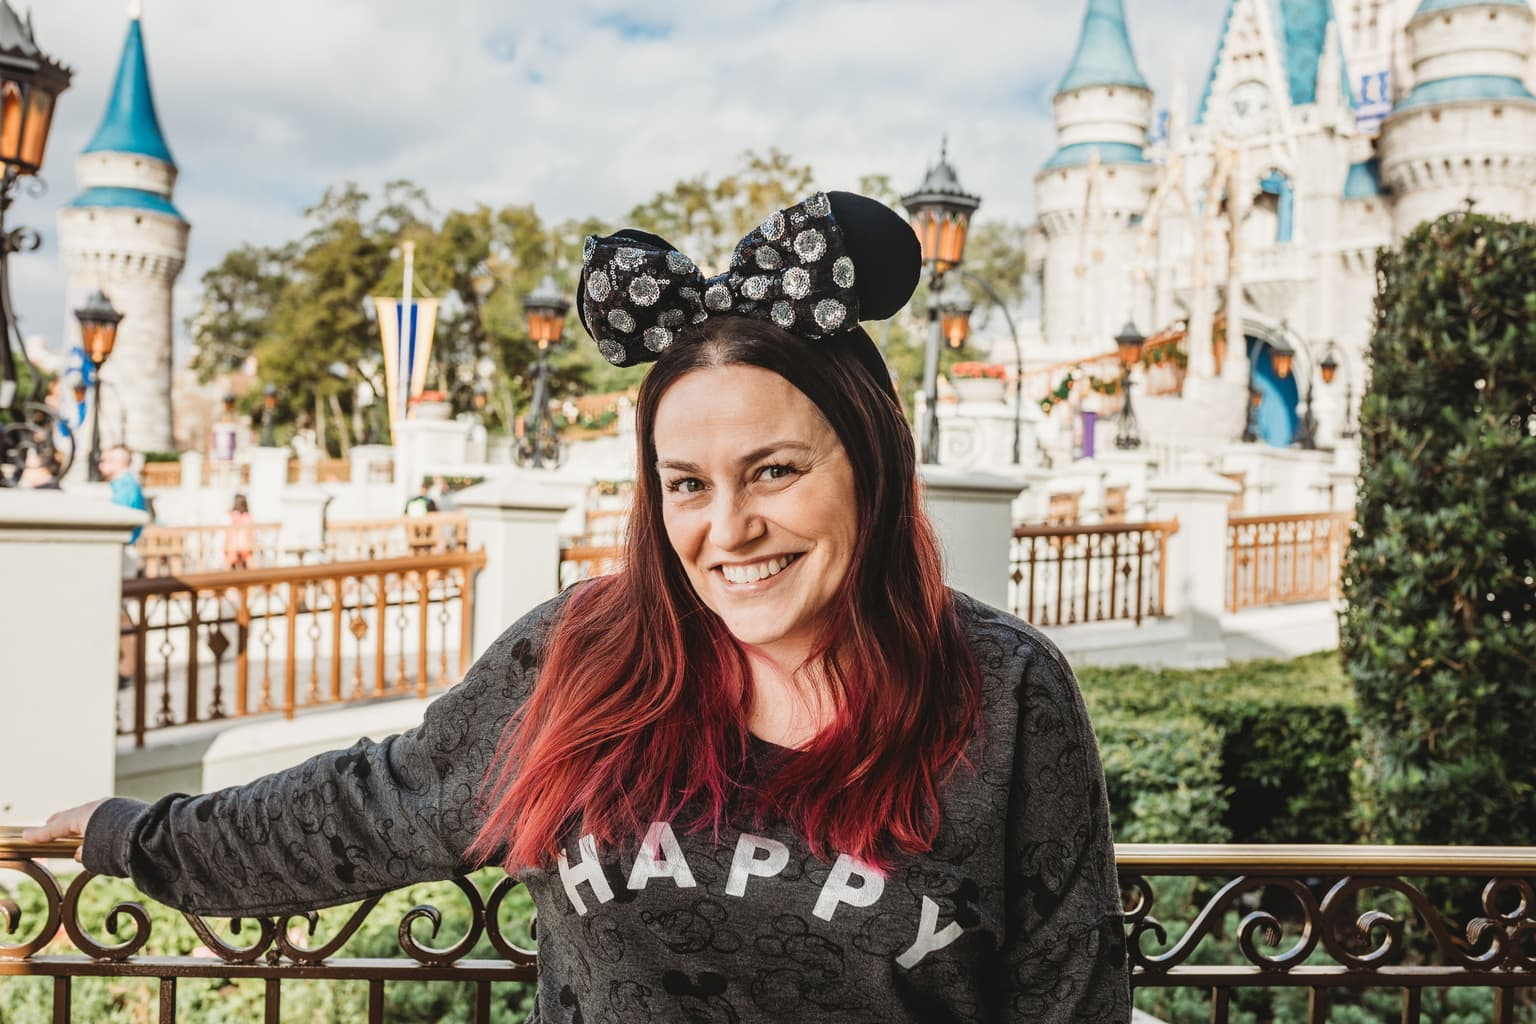 Jana at Disney World